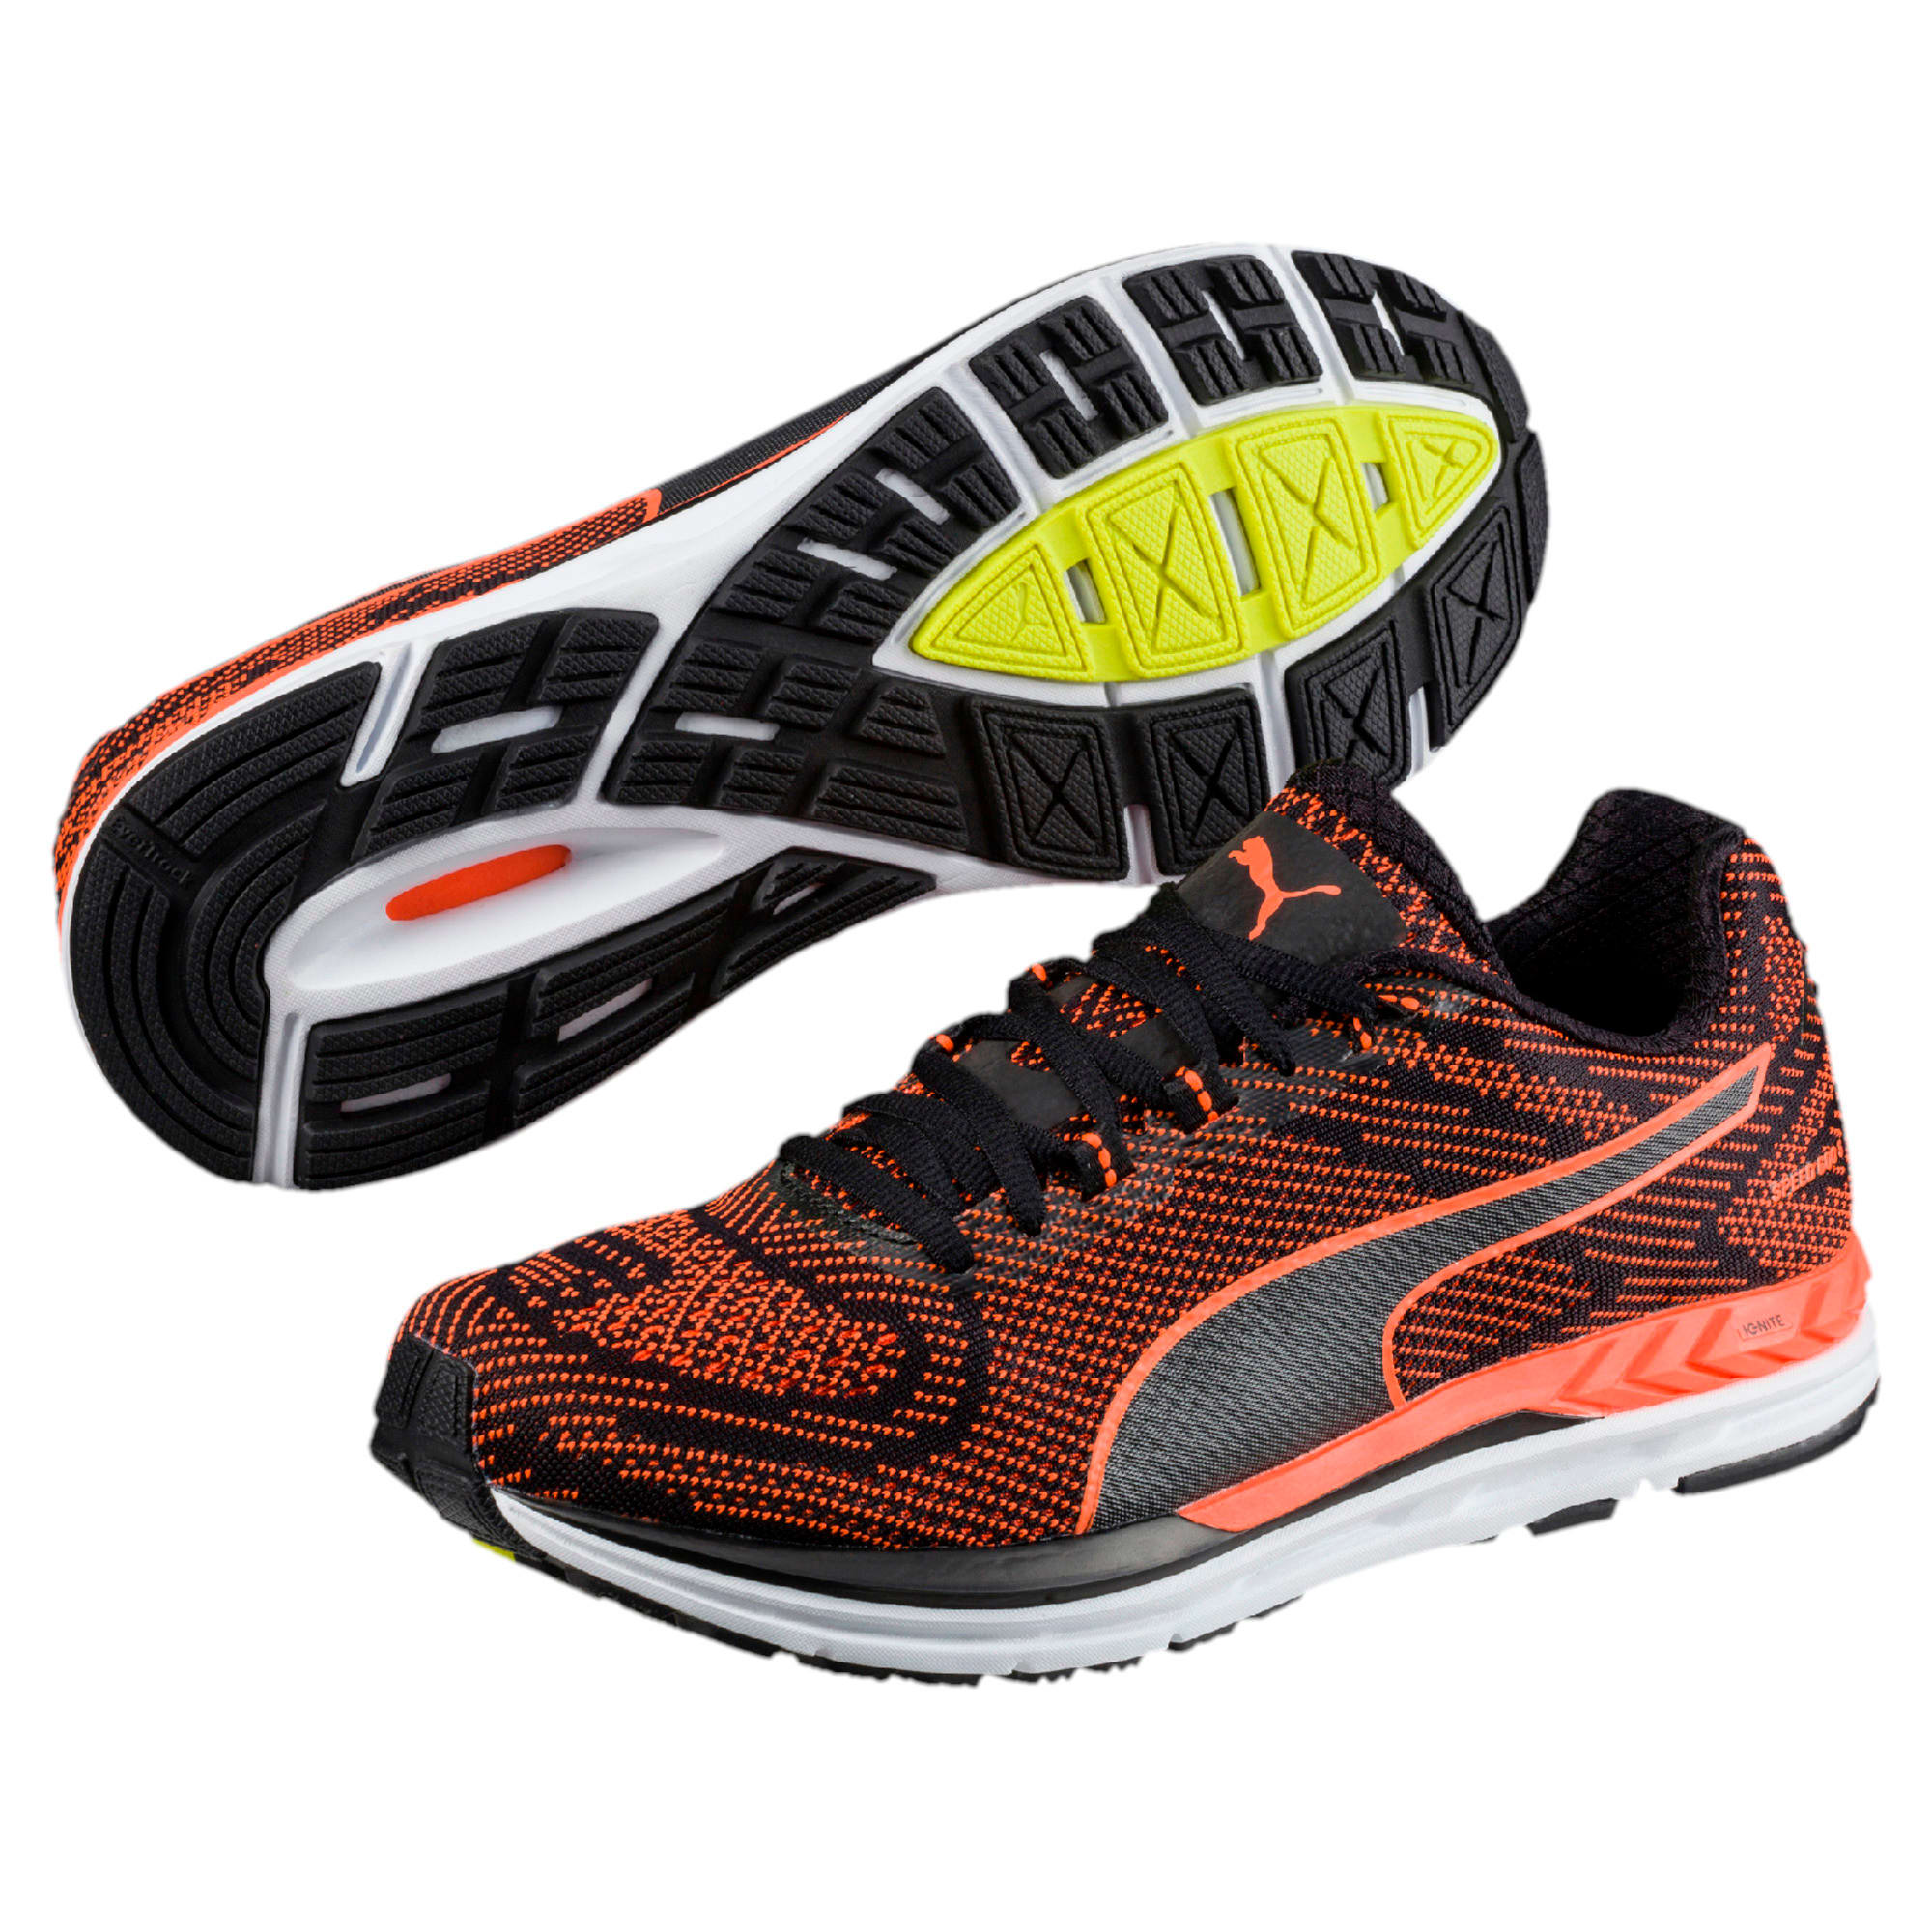 Thumbnail 6 of Speed 600 S IGNITE Men's Running Shoes, Puma Black-Shocking Orange, medium-IND